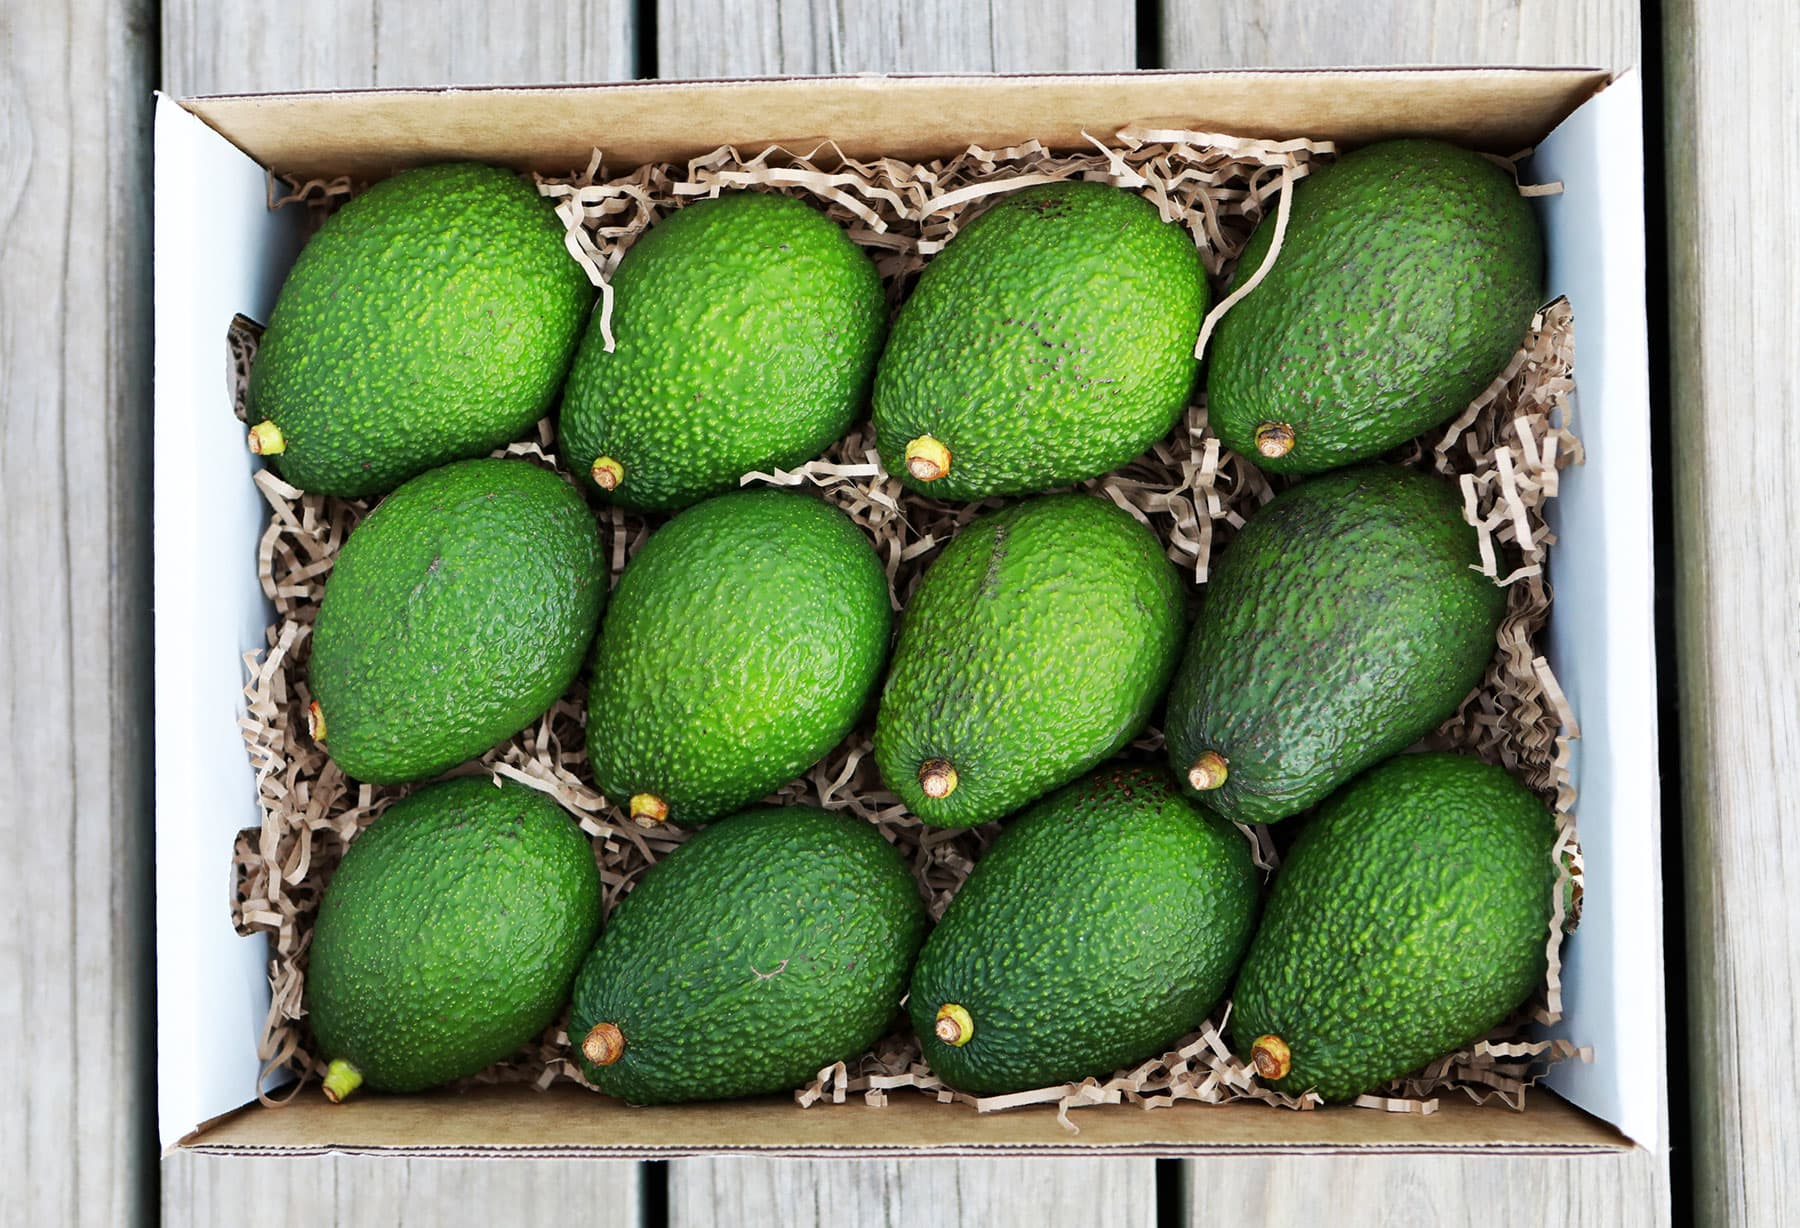 3.5kg box of Hass Avocados